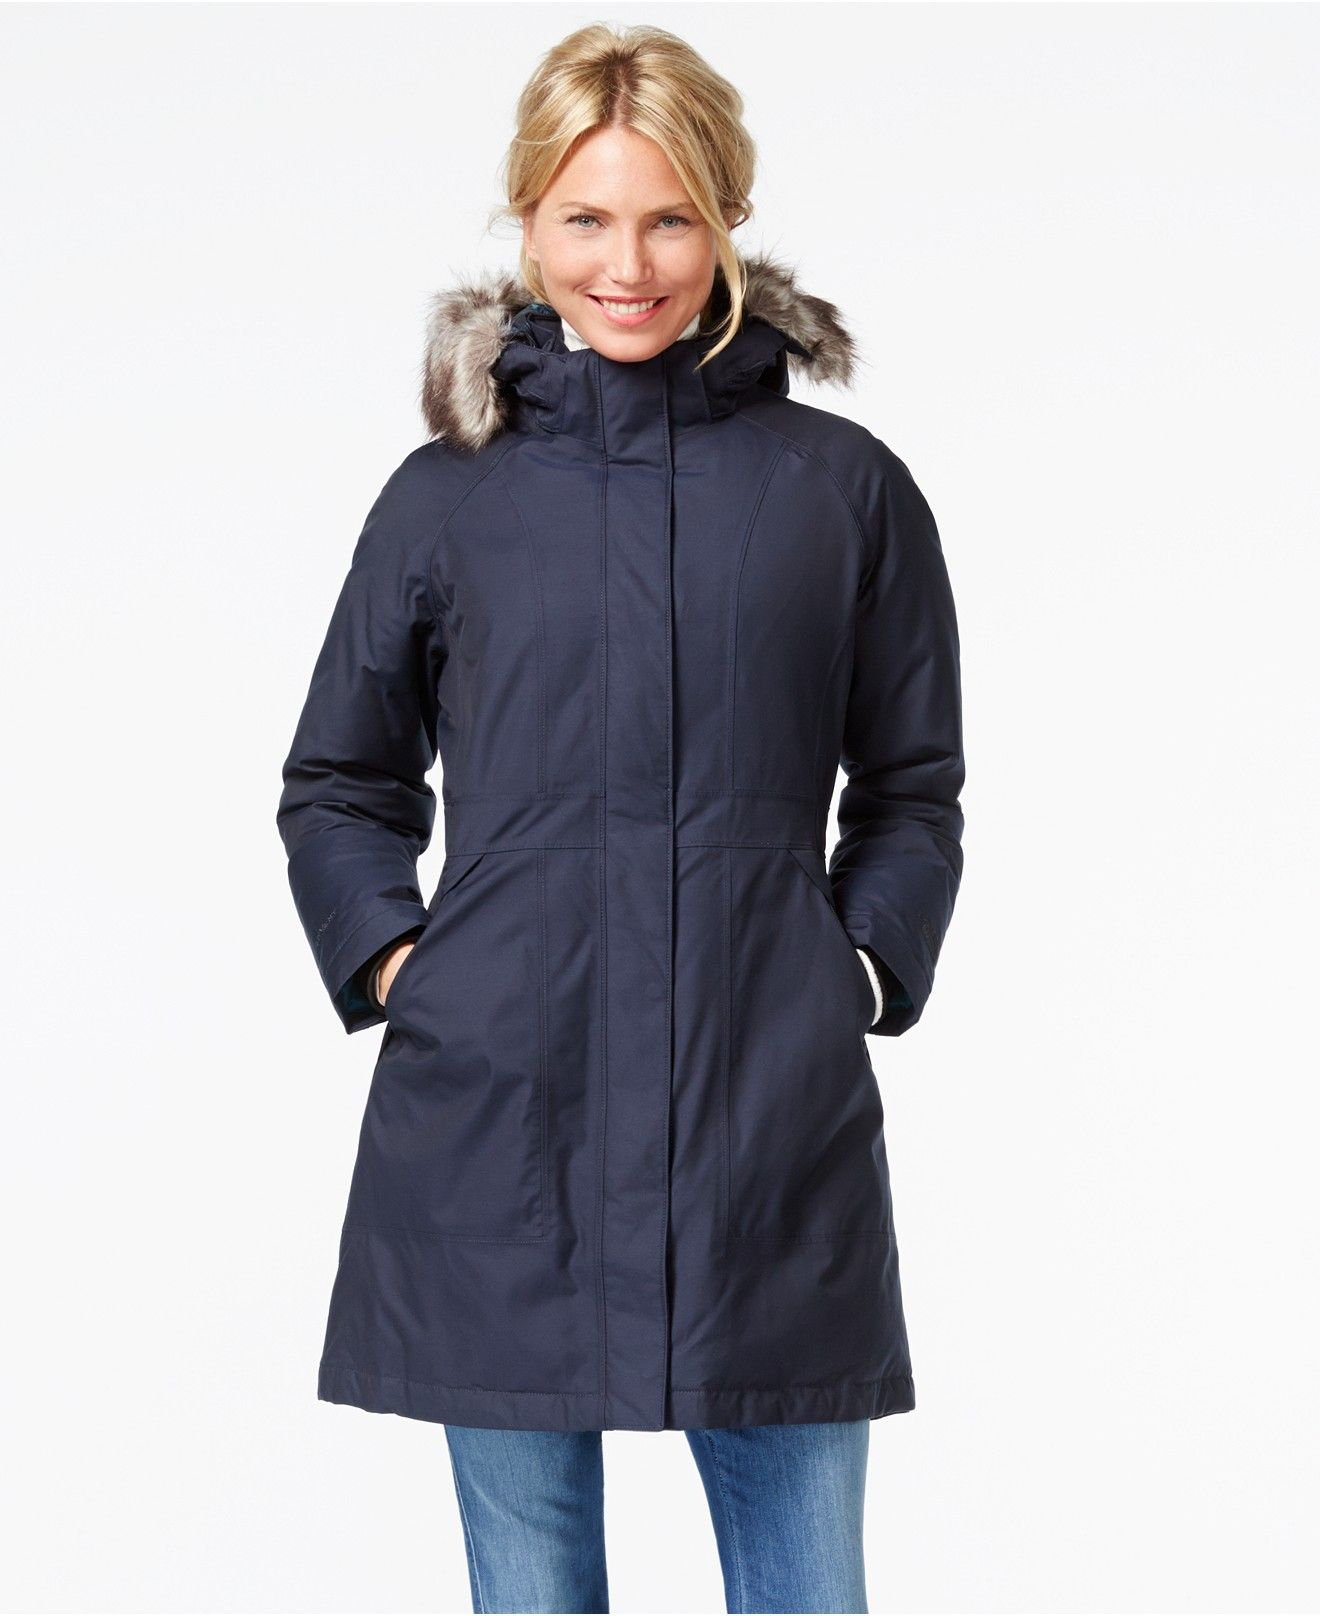 The North Face Arctic Faux Fur Trimmed Parka Jackets Blazers Women Macy S Blazer Jackets For Women North Face Arctic Parka Down Parka [ 1616 x 1320 Pixel ]